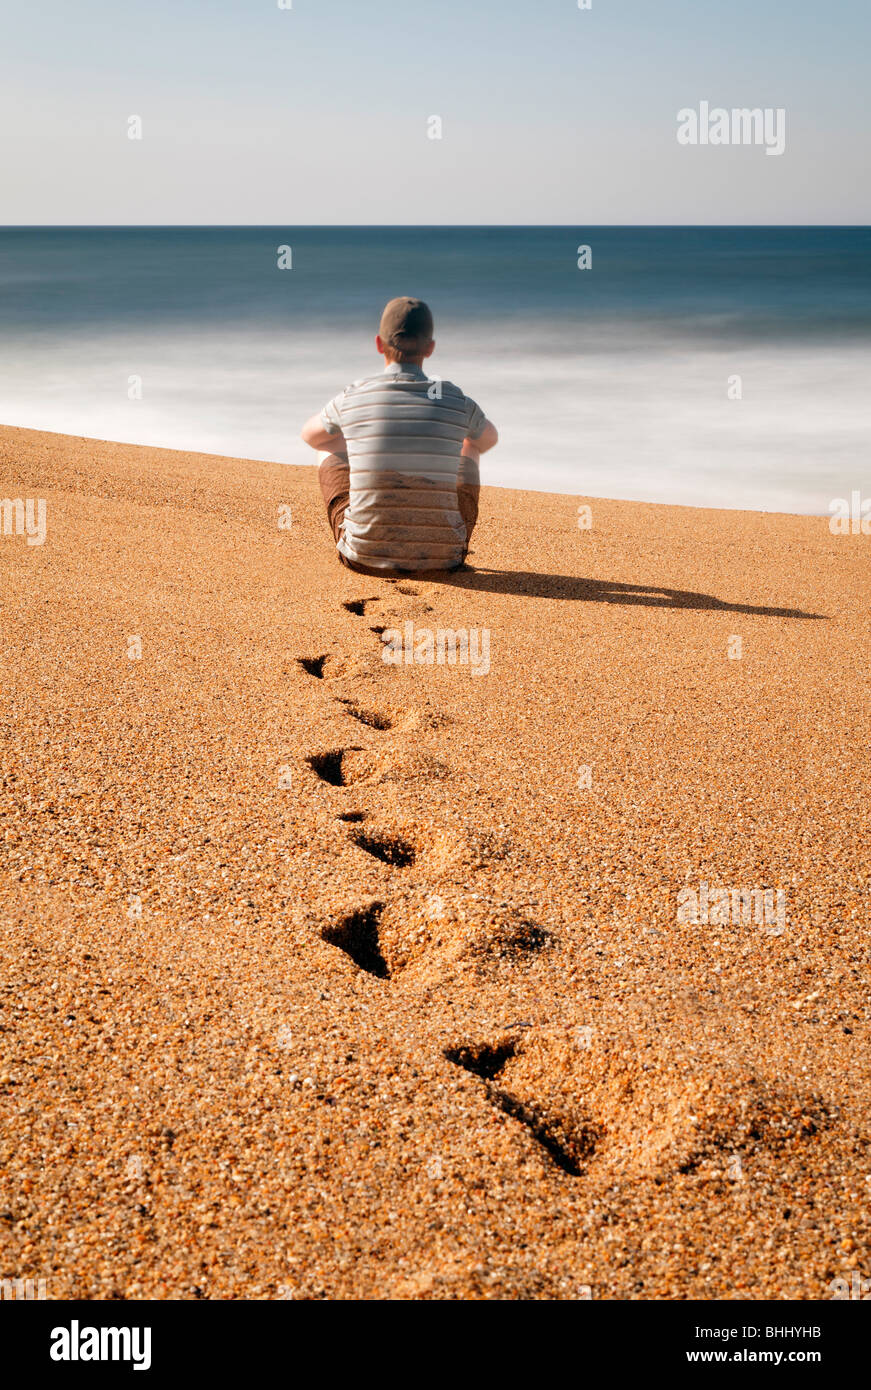 Man sitting on beach, looking out to sea - Stock Image